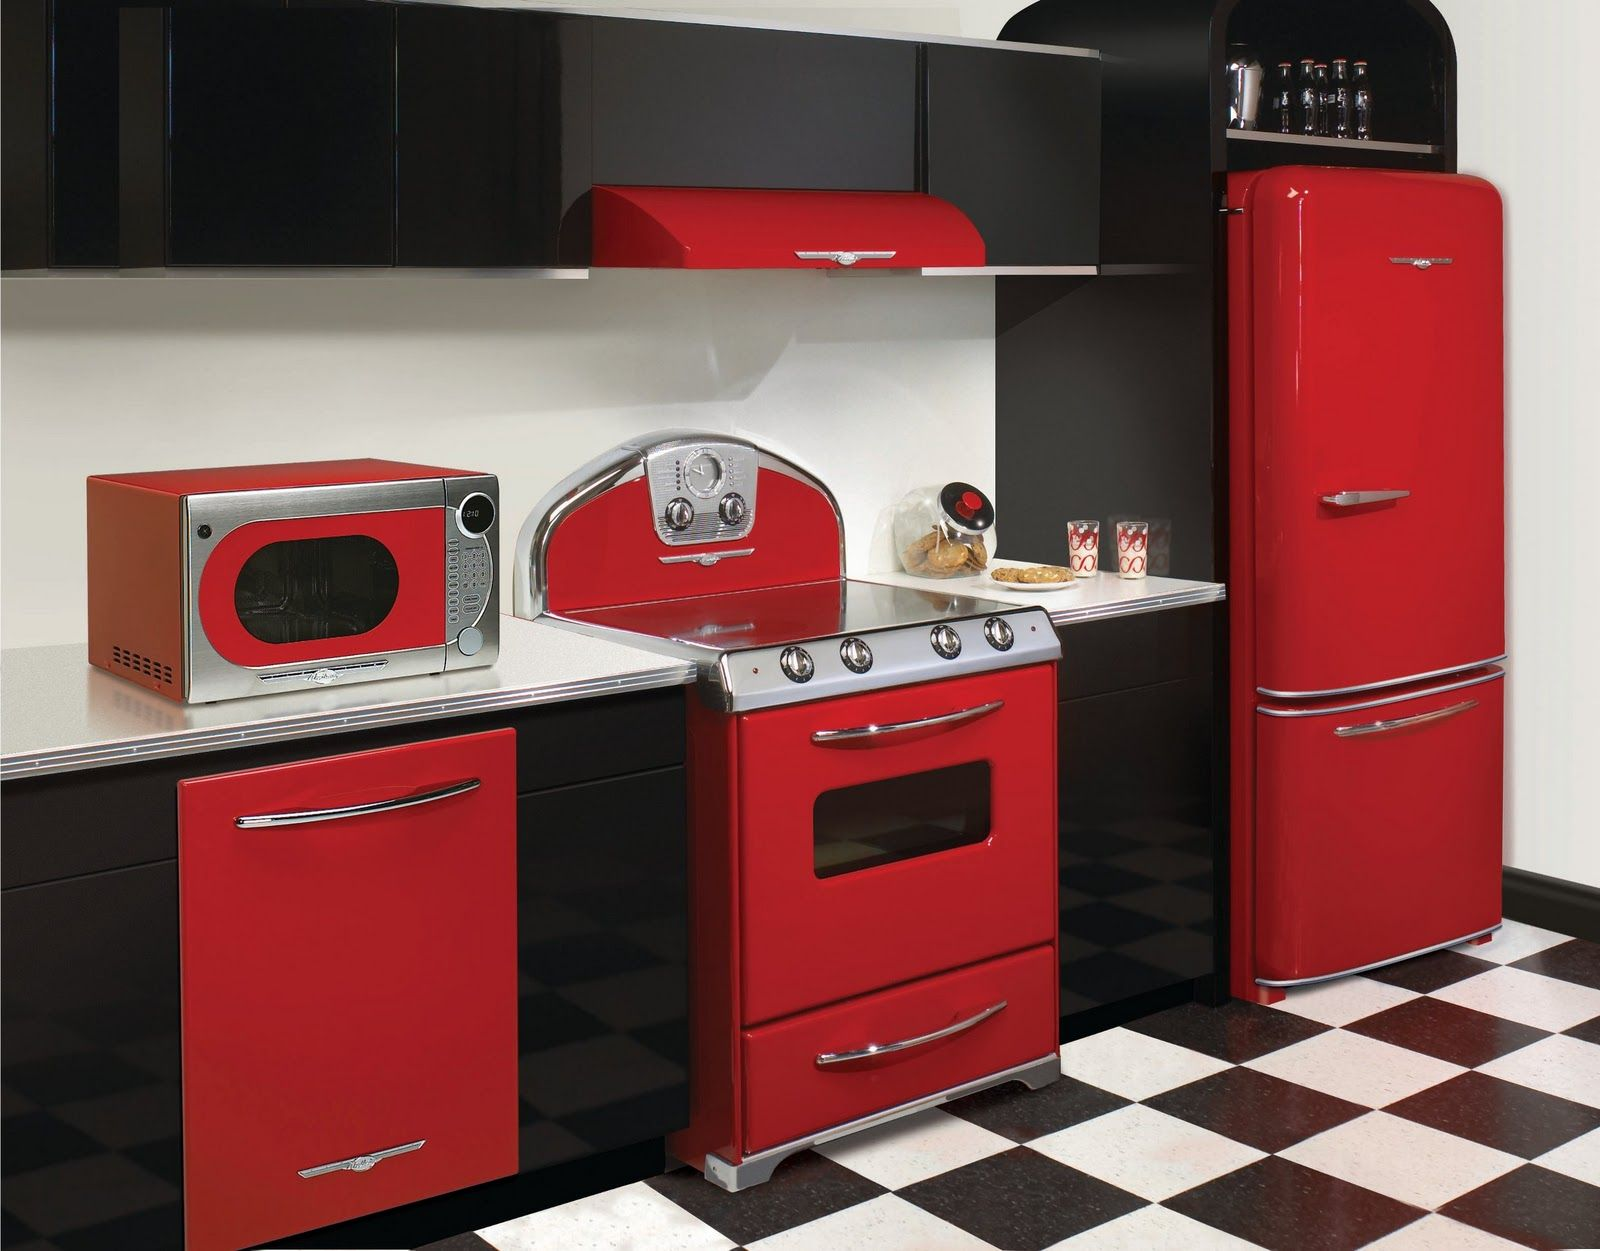 Uncategorized Retro Small Kitchen Appliances red appliances for kitchen and residential design elmiras northstar series is now